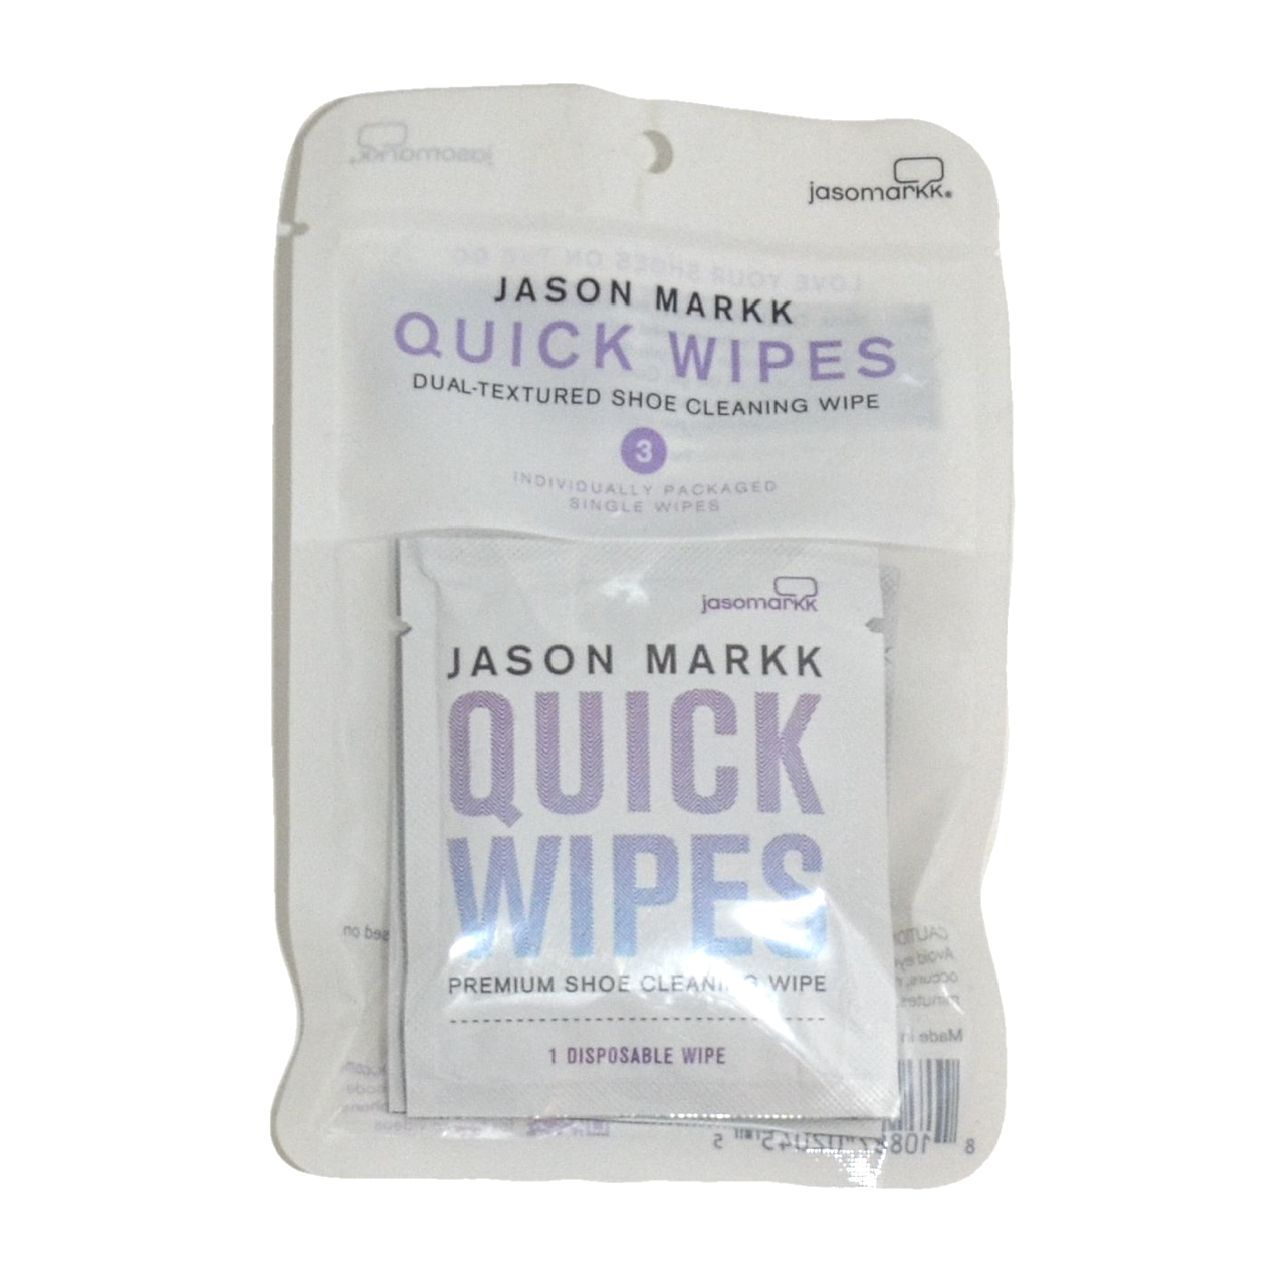 JASON MARKK (QUICK WIPES 3PACK)